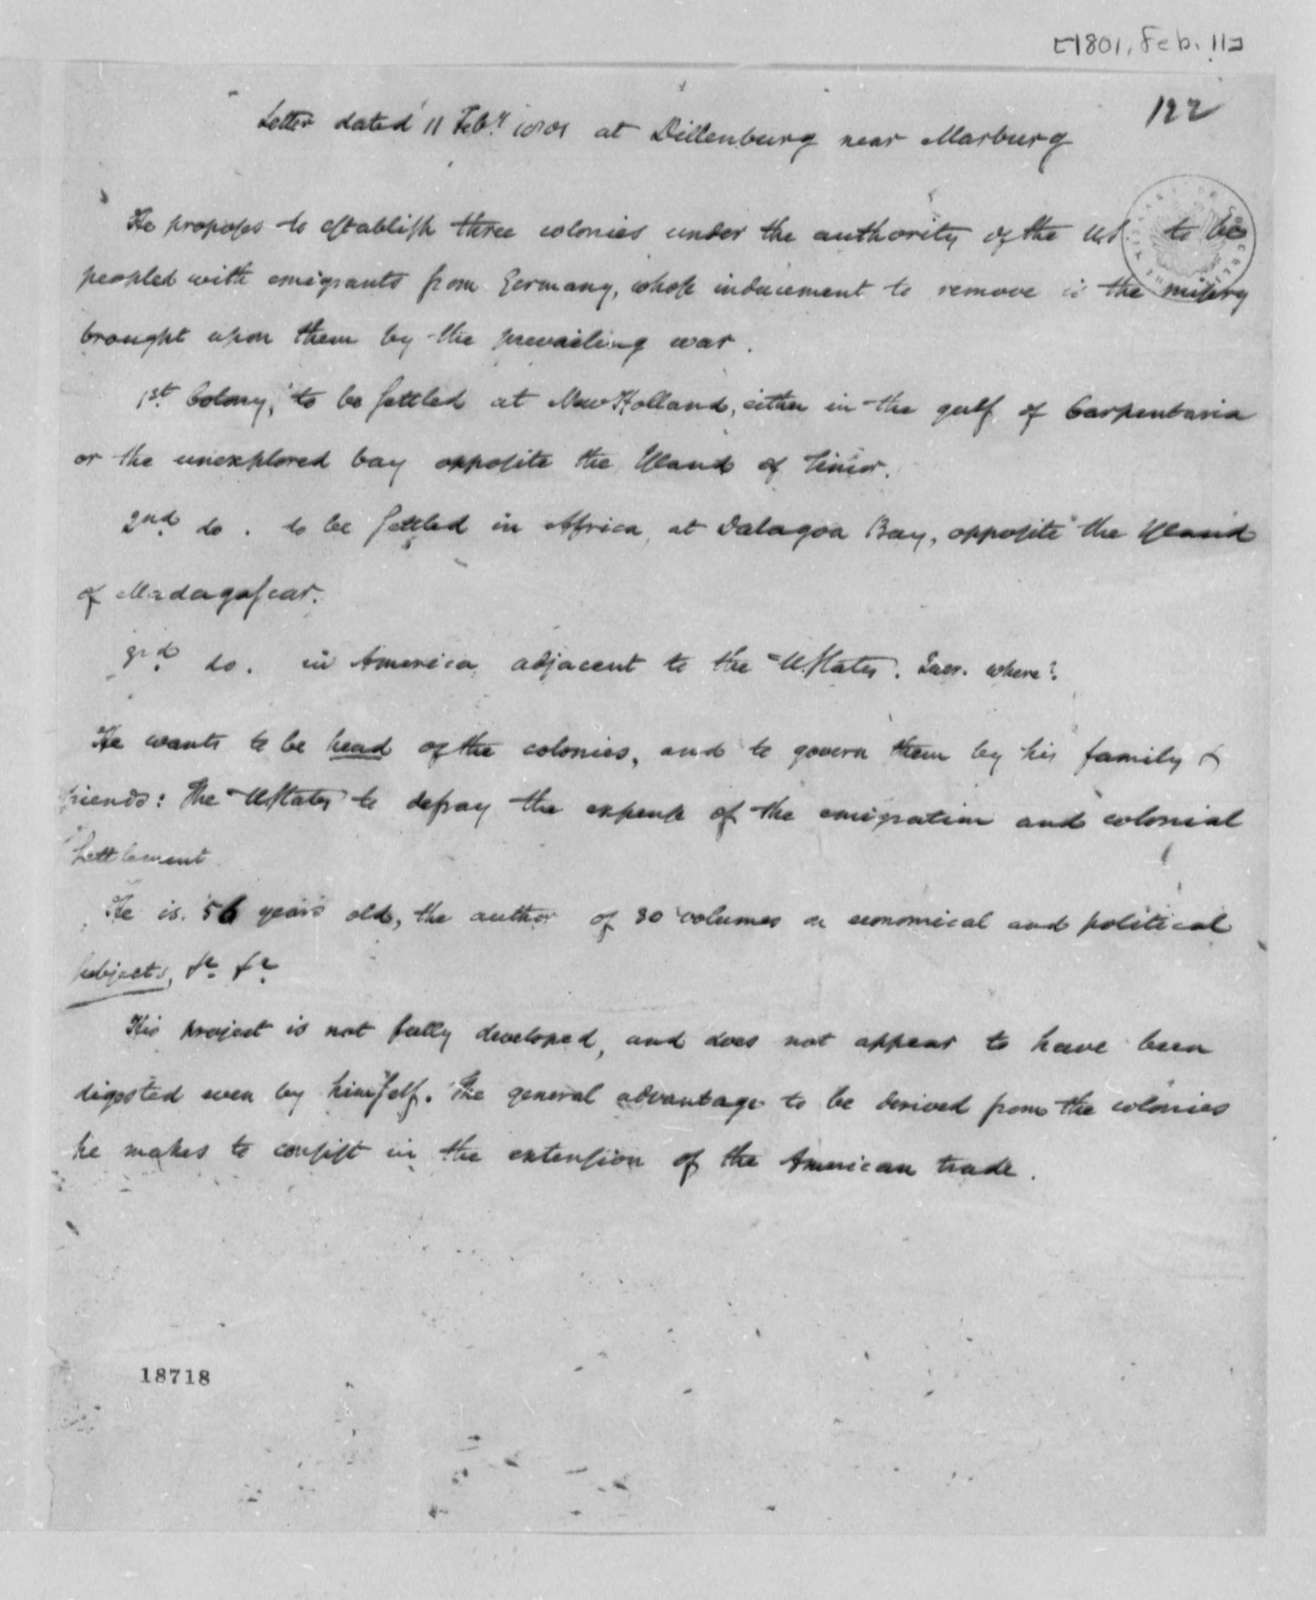 """Unknown to Unknown, February 11, 1801, Copy of Letter written """"at Dillenburg near Marburg"""" on a Proposal to Establish """"three colonies under the authority of the US peopled with emigrants from Germany"""""""